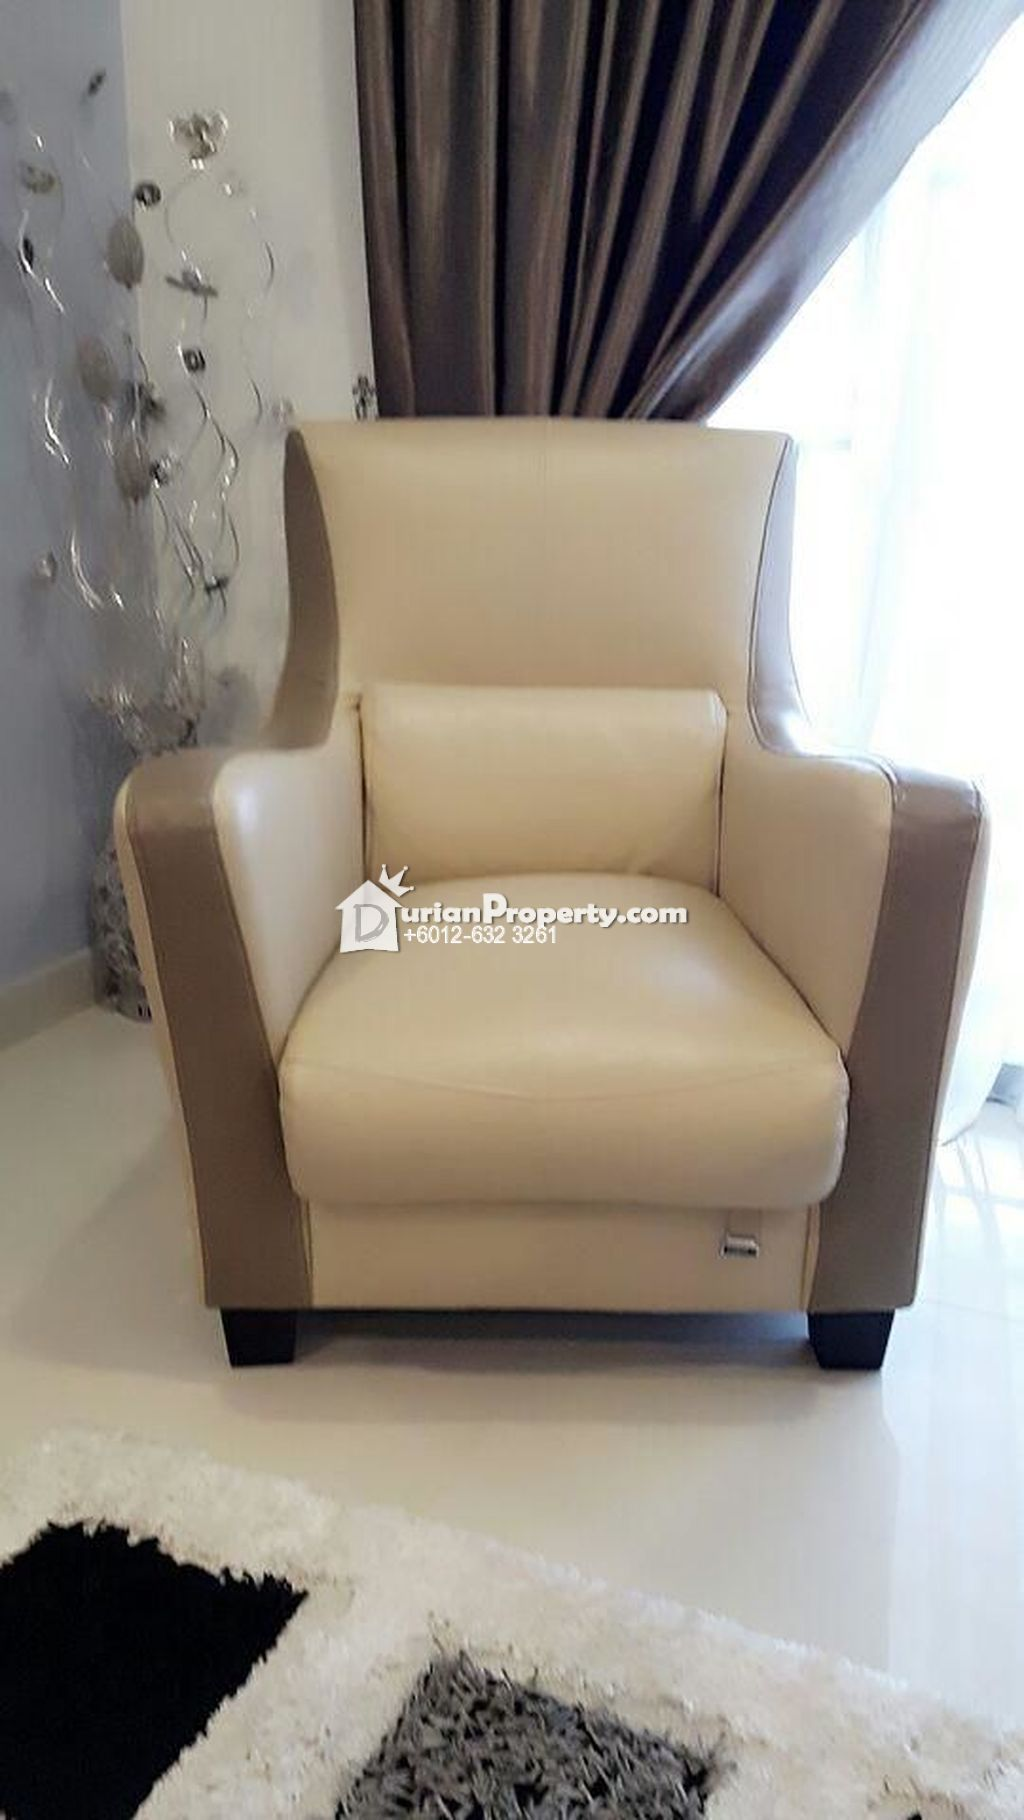 Branded Leather Seater Sofa Chair For Sale